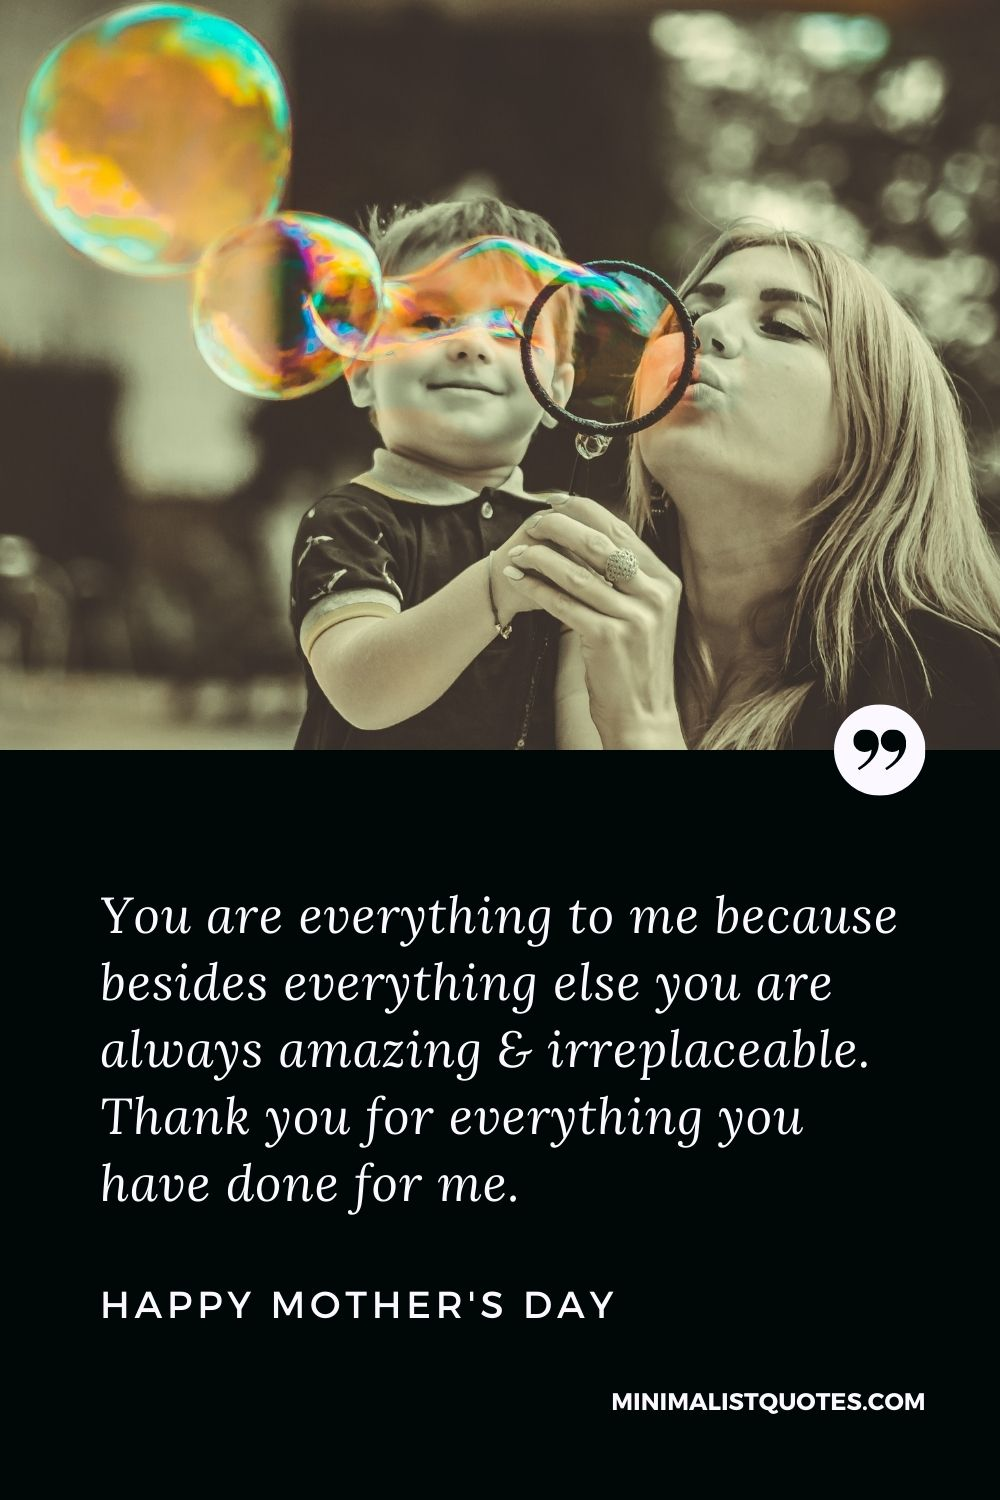 Mother's Day Wish & Message With HD Image: You are everything to me because besides everything else you are always amazing & irreplaceable. Thank you for everything you have done for me.Happy Mother's Day!